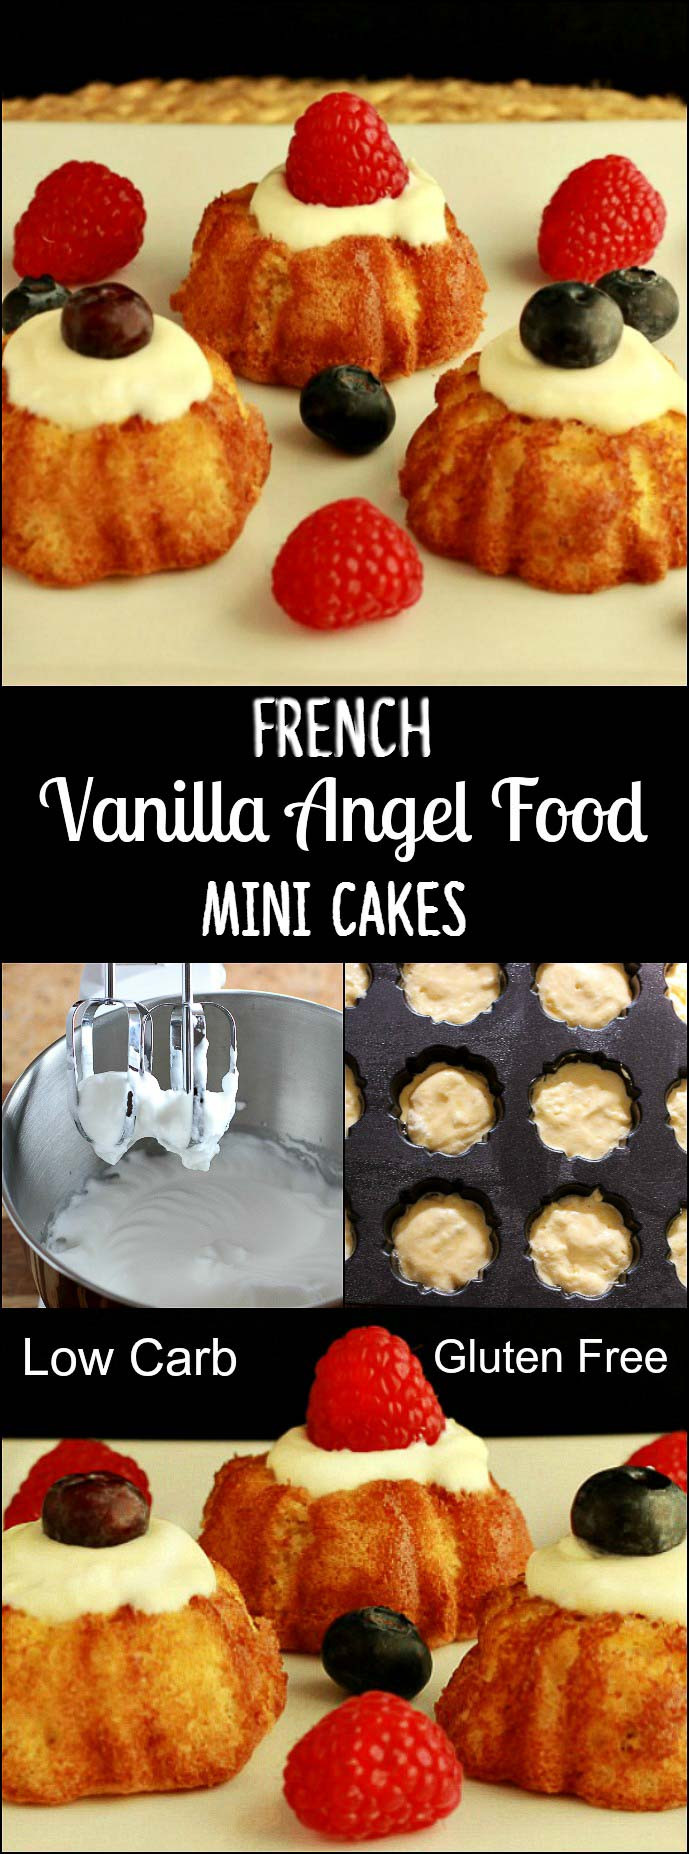 Carbs In Angel Food Cake  French Vanilla Angel Food Cake grain free